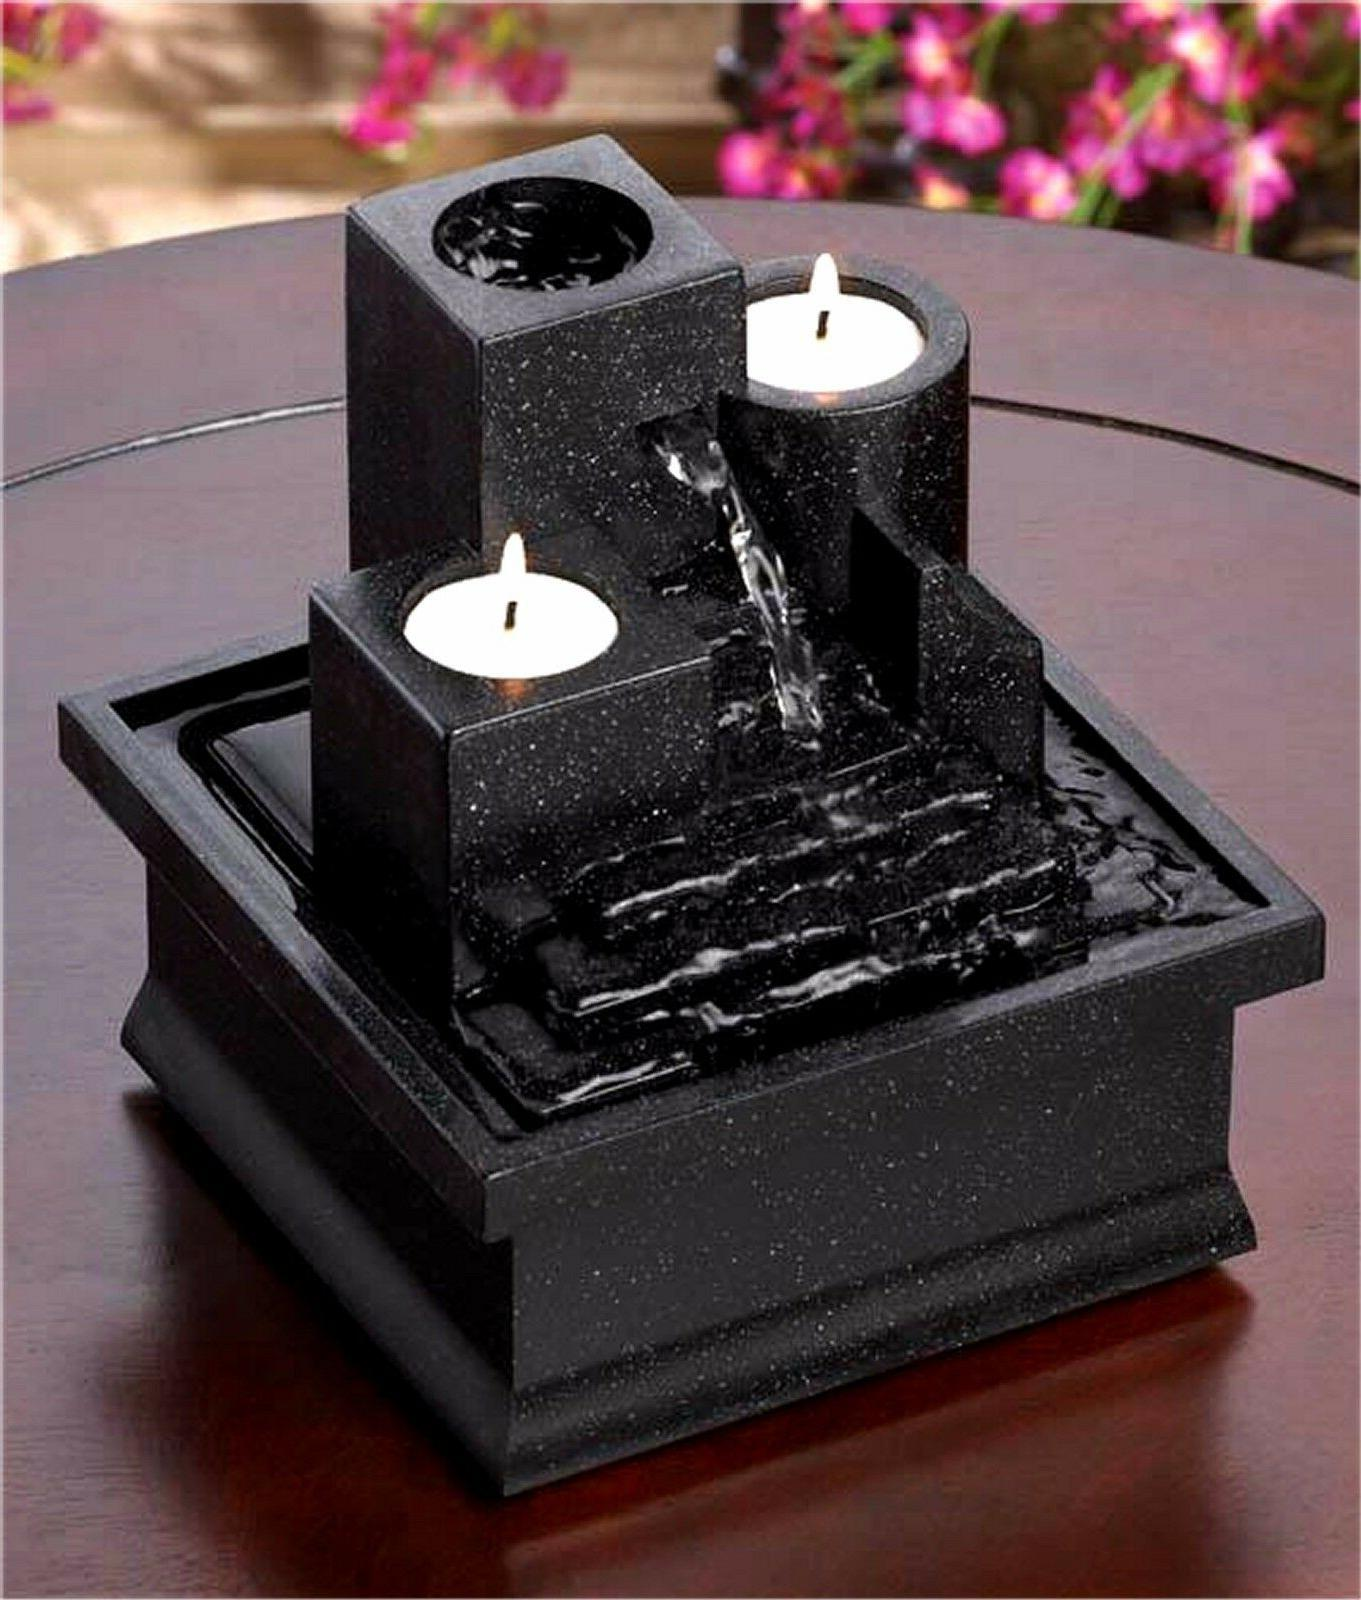 TEMPLE STEPS TABLETOP FOUNTAIN & CANDLE HOLDER W/ CASCADING